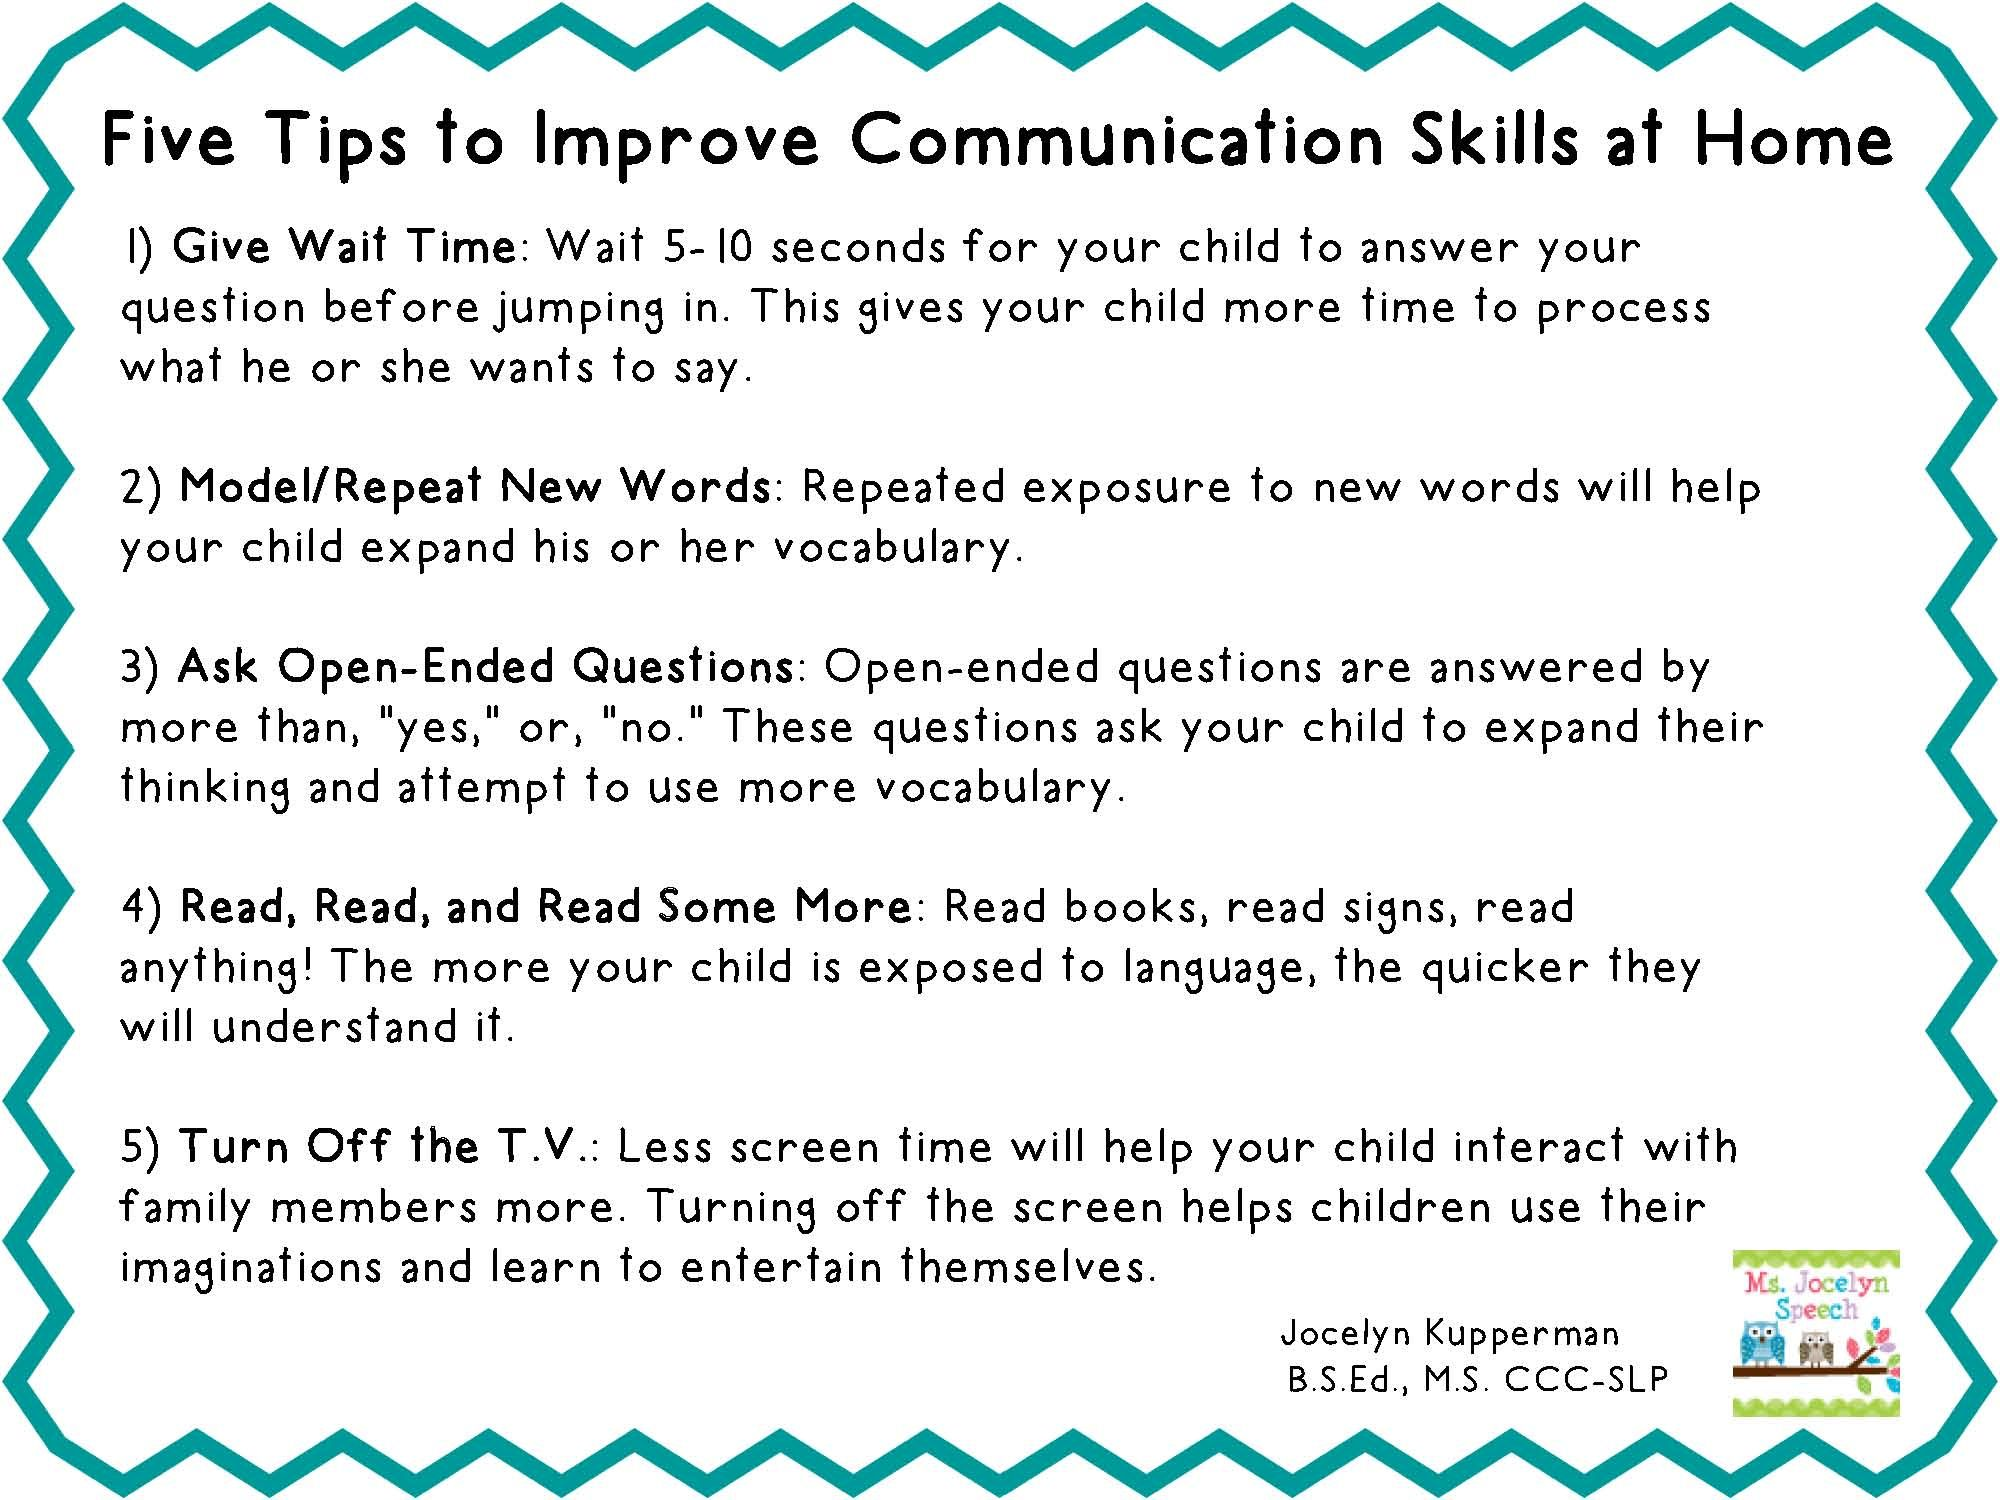 5 Tips To Improve Communication Skills At Home